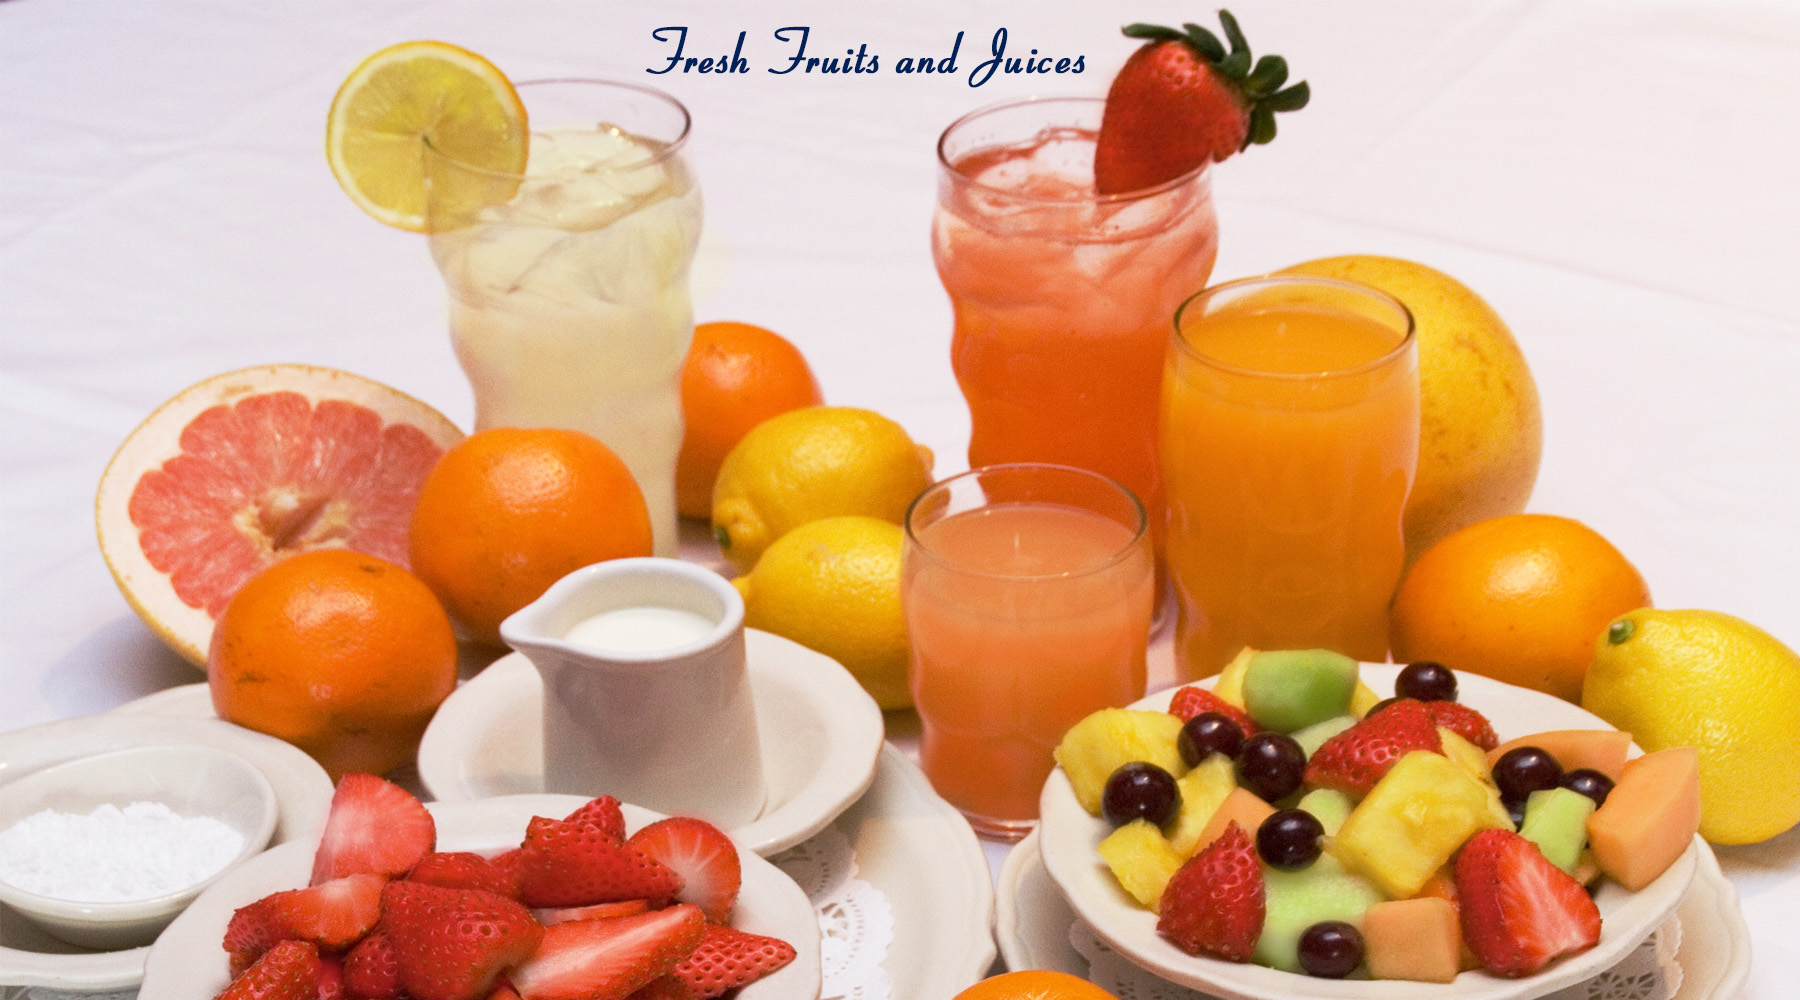 FRESH FRUITS AND JUICES